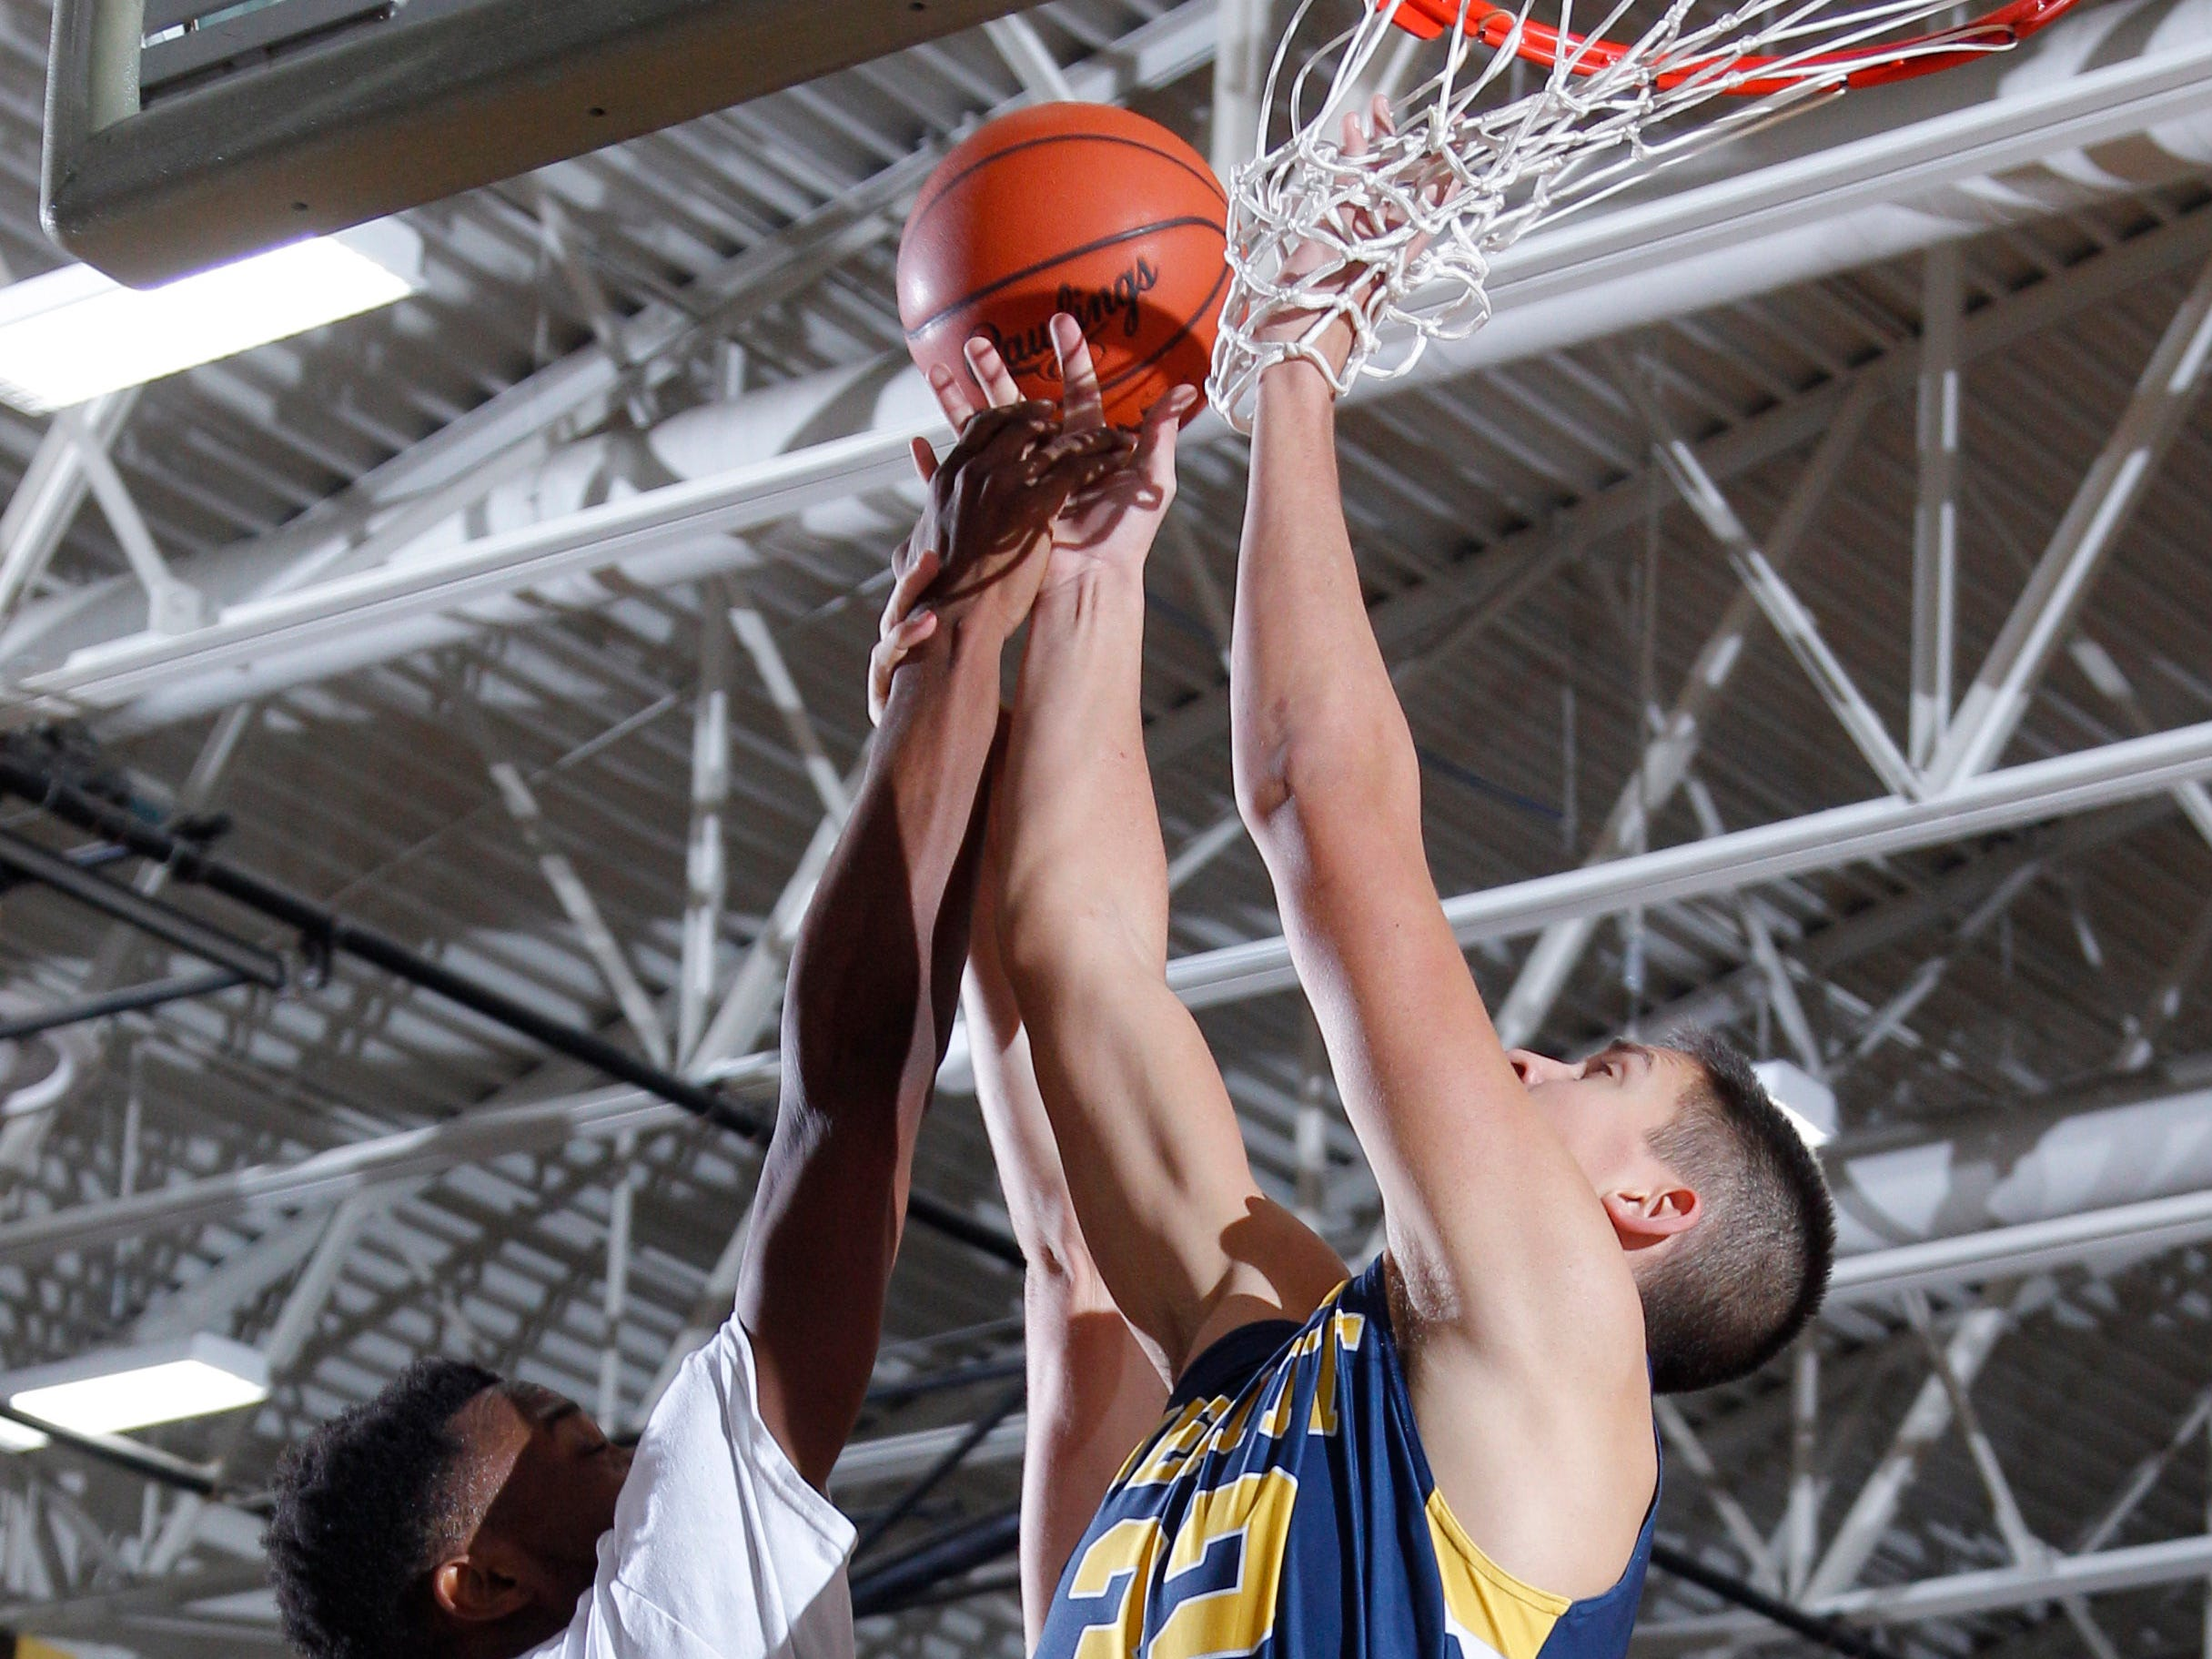 DeWitt's Mason Gilbert, right, and Grand Ledge's Javel Lewis vie for a rebound, Tuesday, Jan. 15, 2019, in Grand Ledge, Mich.